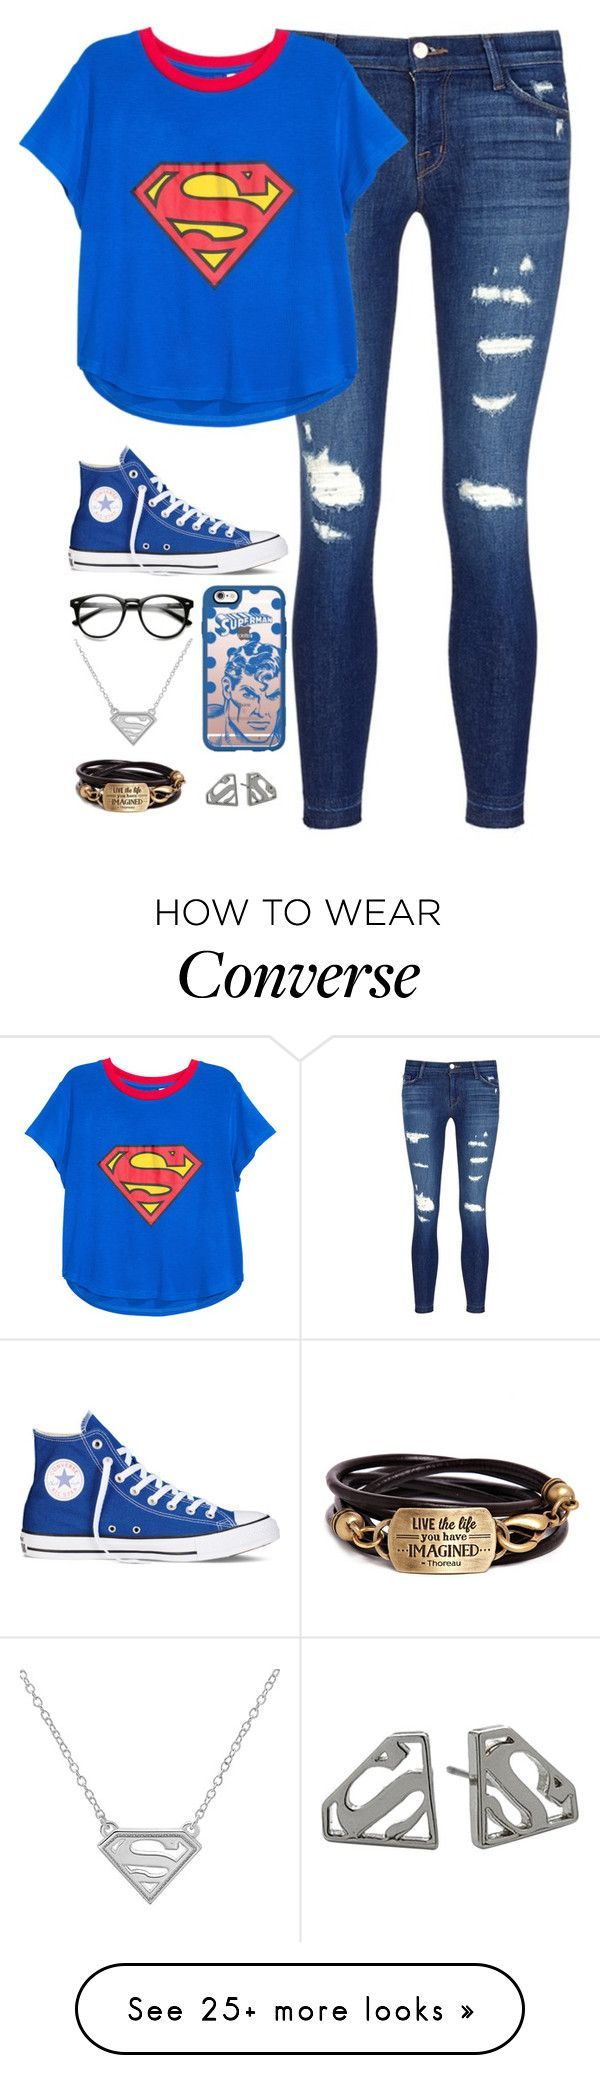 """Untitled #46"" by kasaikayla on Polyvore featuring J Brand, H&M, Converse, Casetify and Noir"